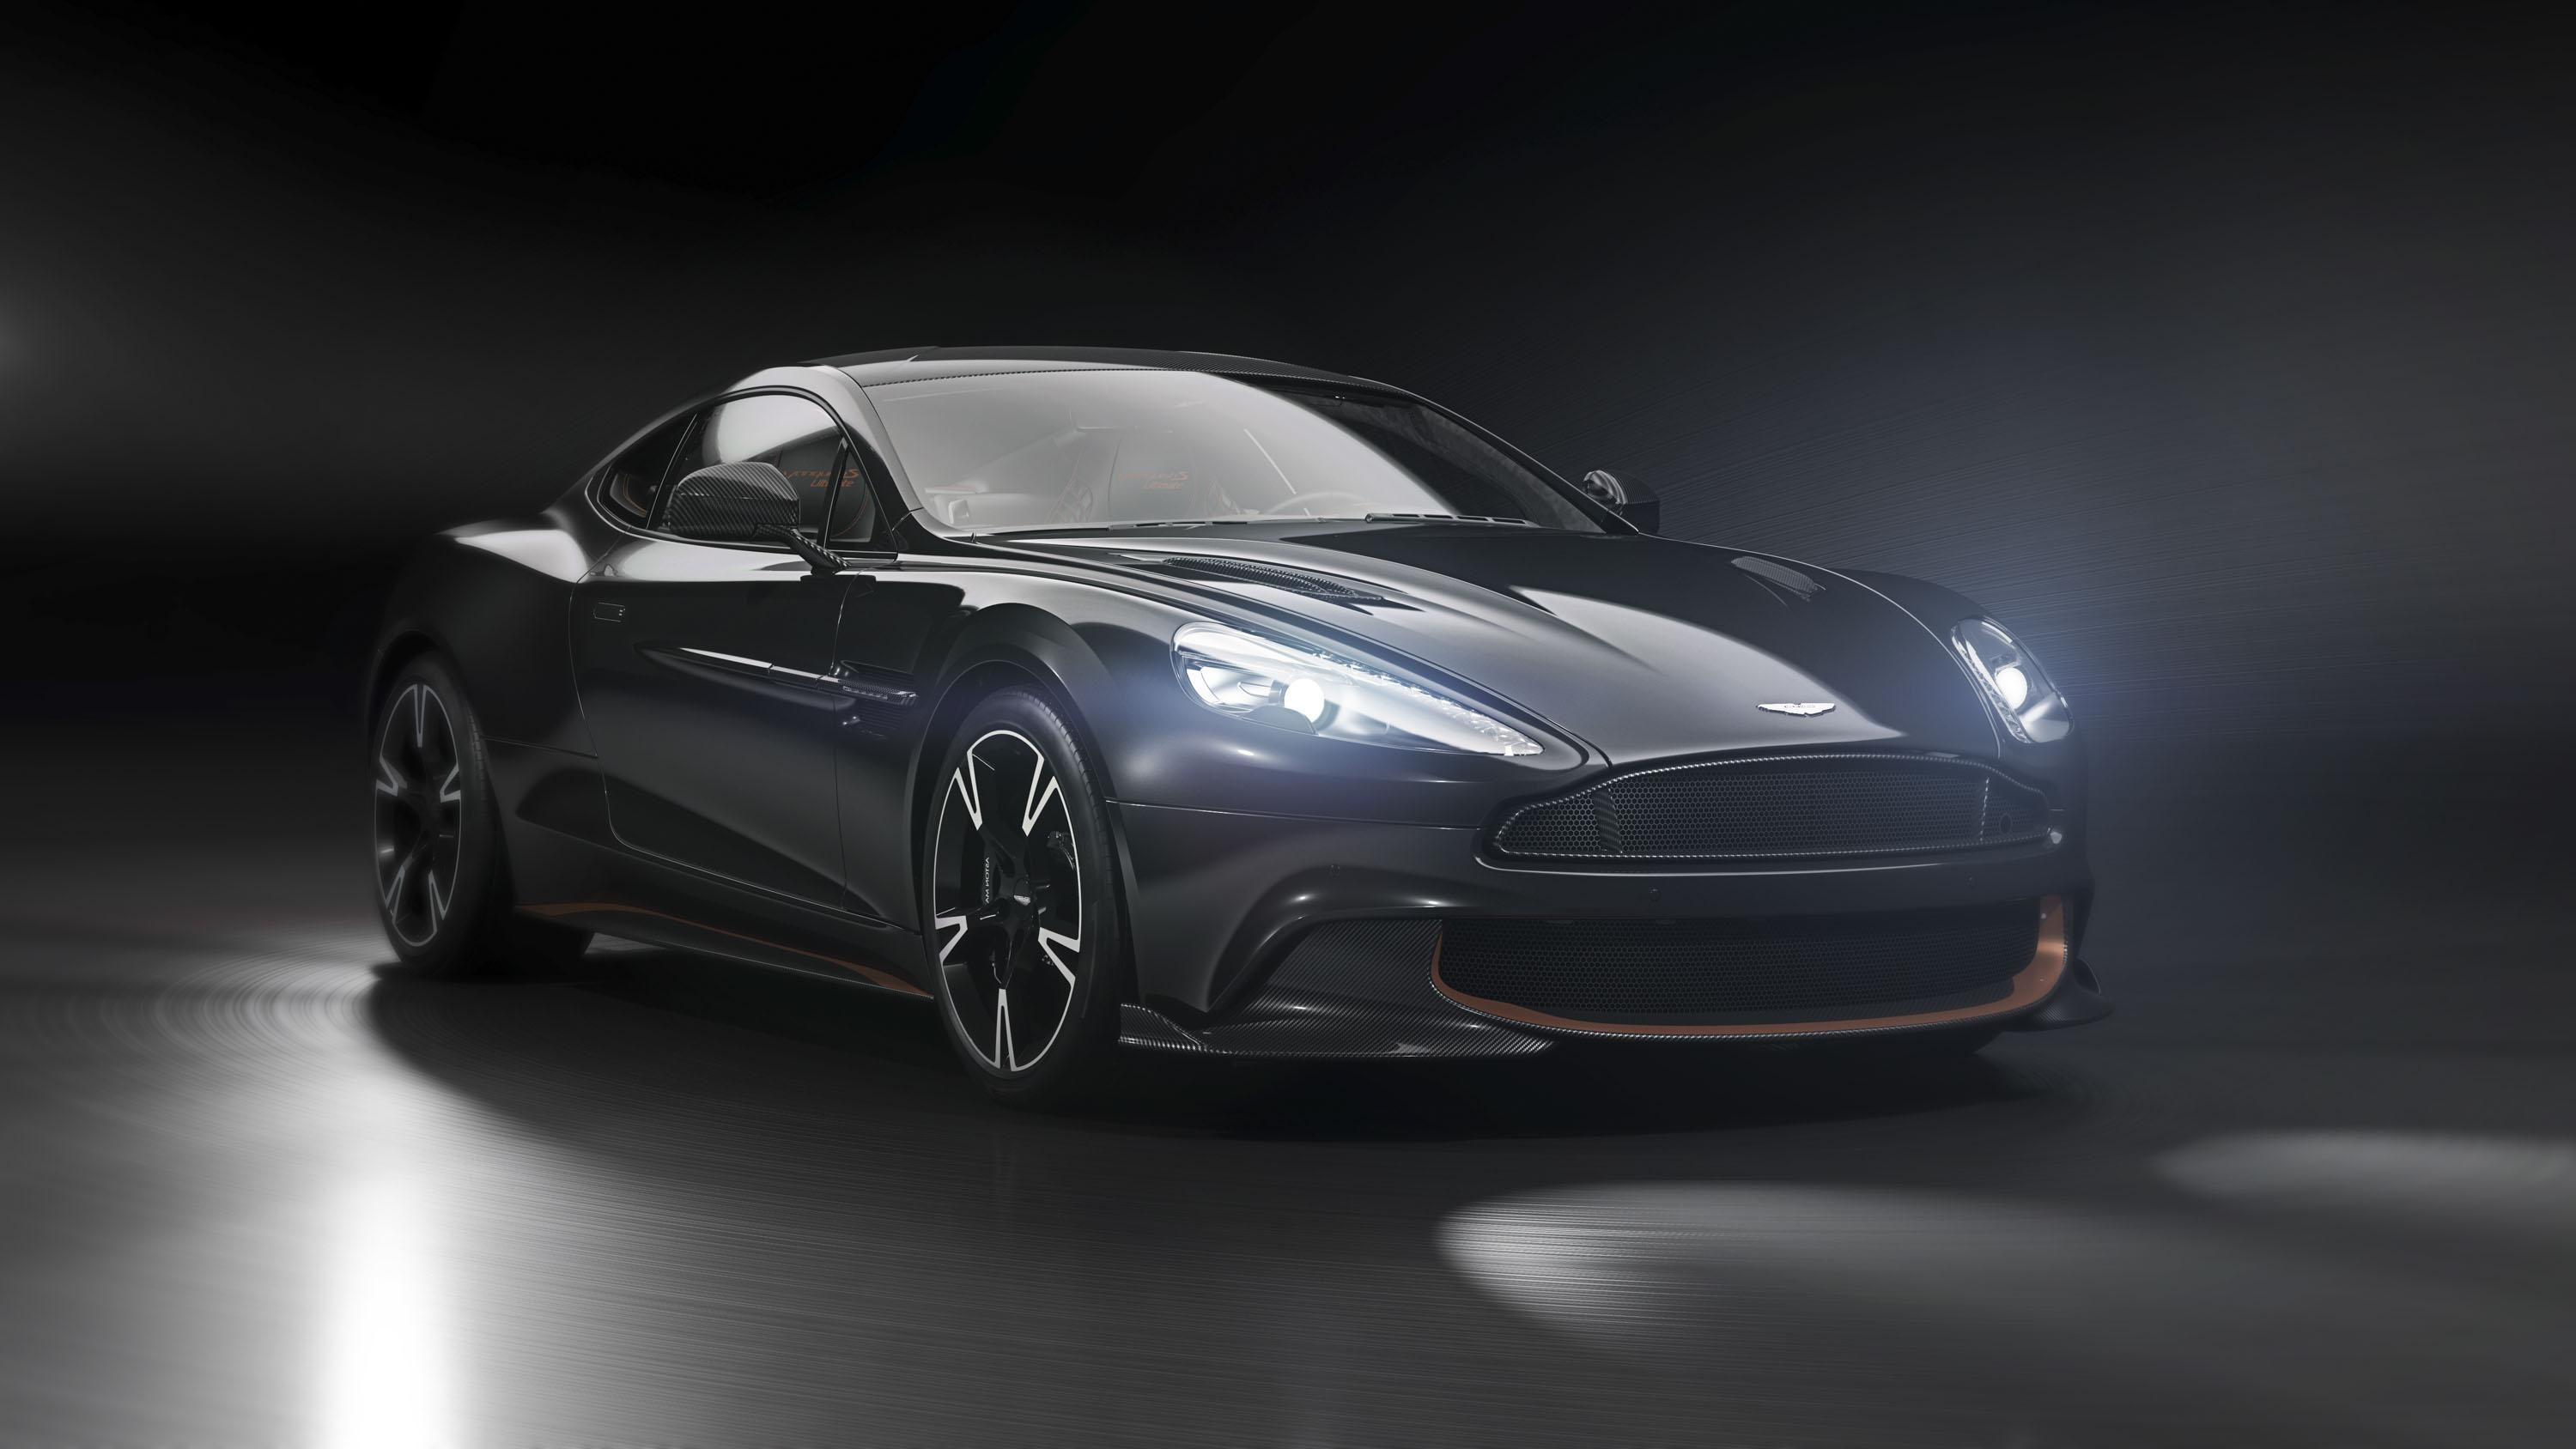 2018 Aston Martin Vanquish S Ultimate Pictures, Photos, Wallpapers